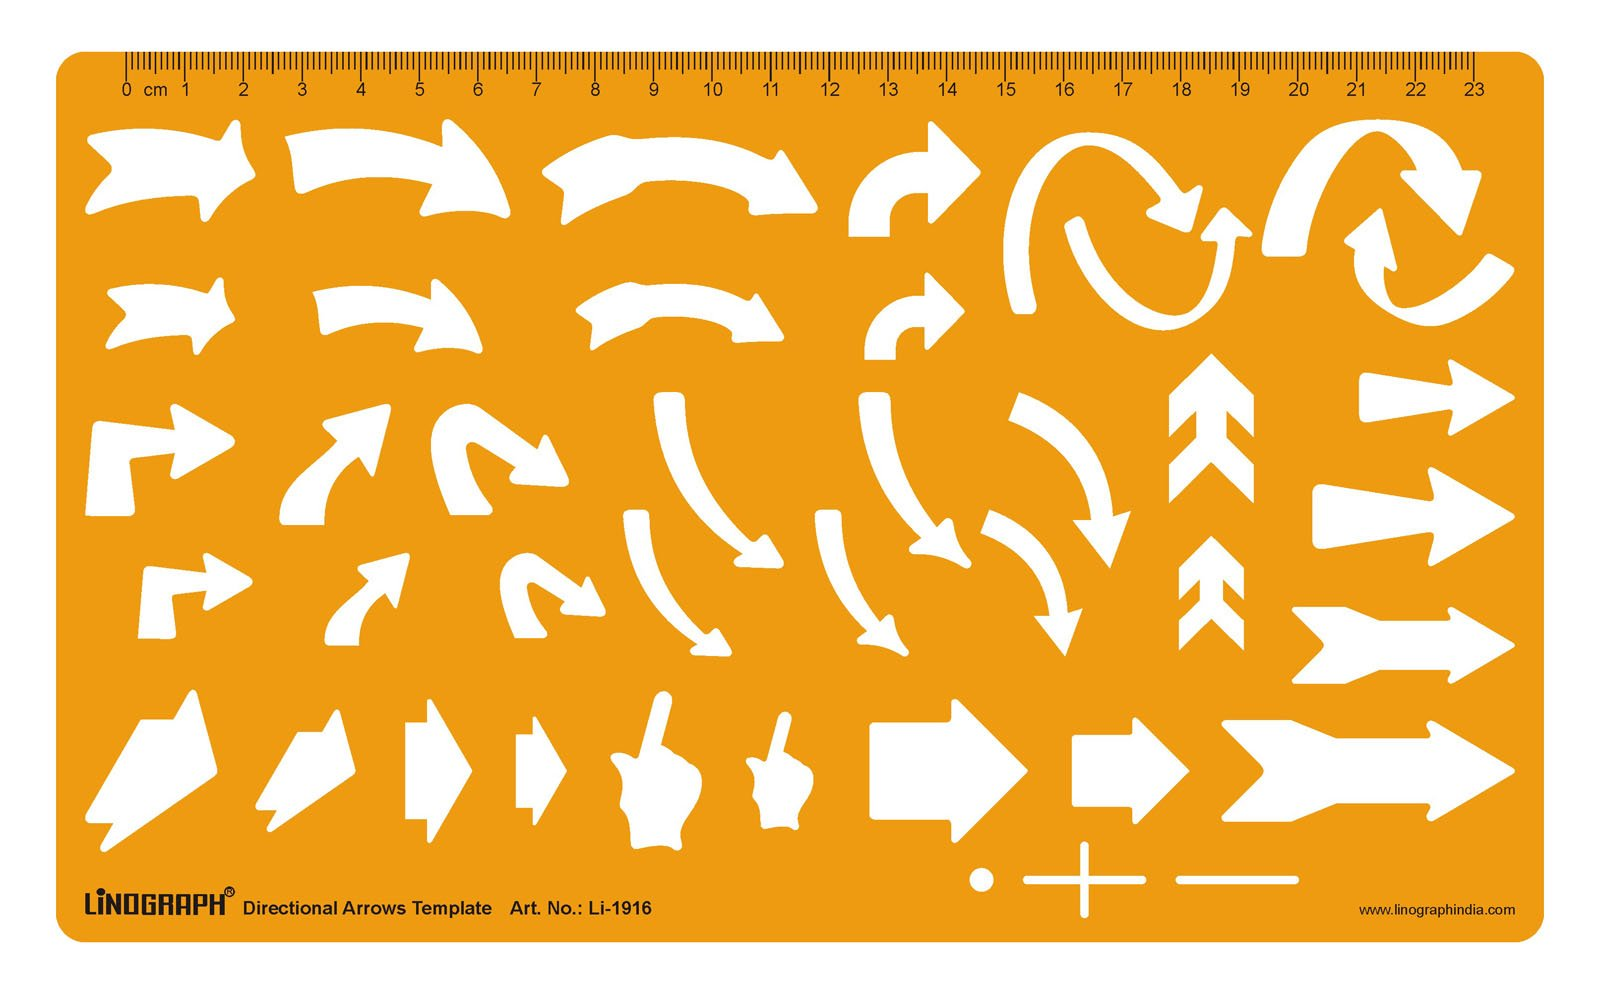 Linograph Drafting And Design Template Directional Arrows Technical Drawing Stencil